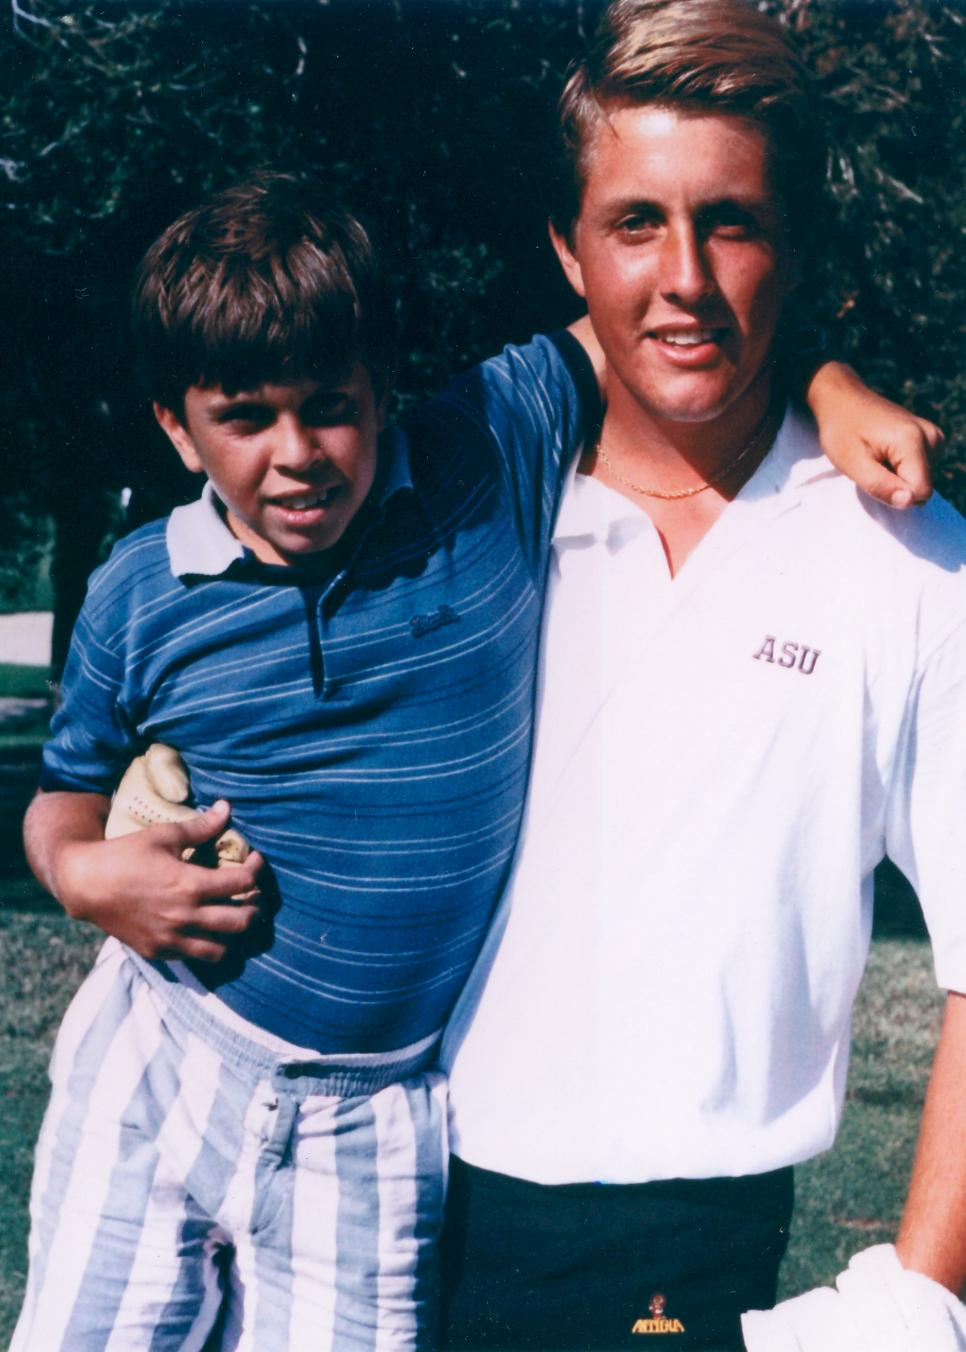 Tim-Phil-Mickelson-McCormick-Ranch-1989.jpg